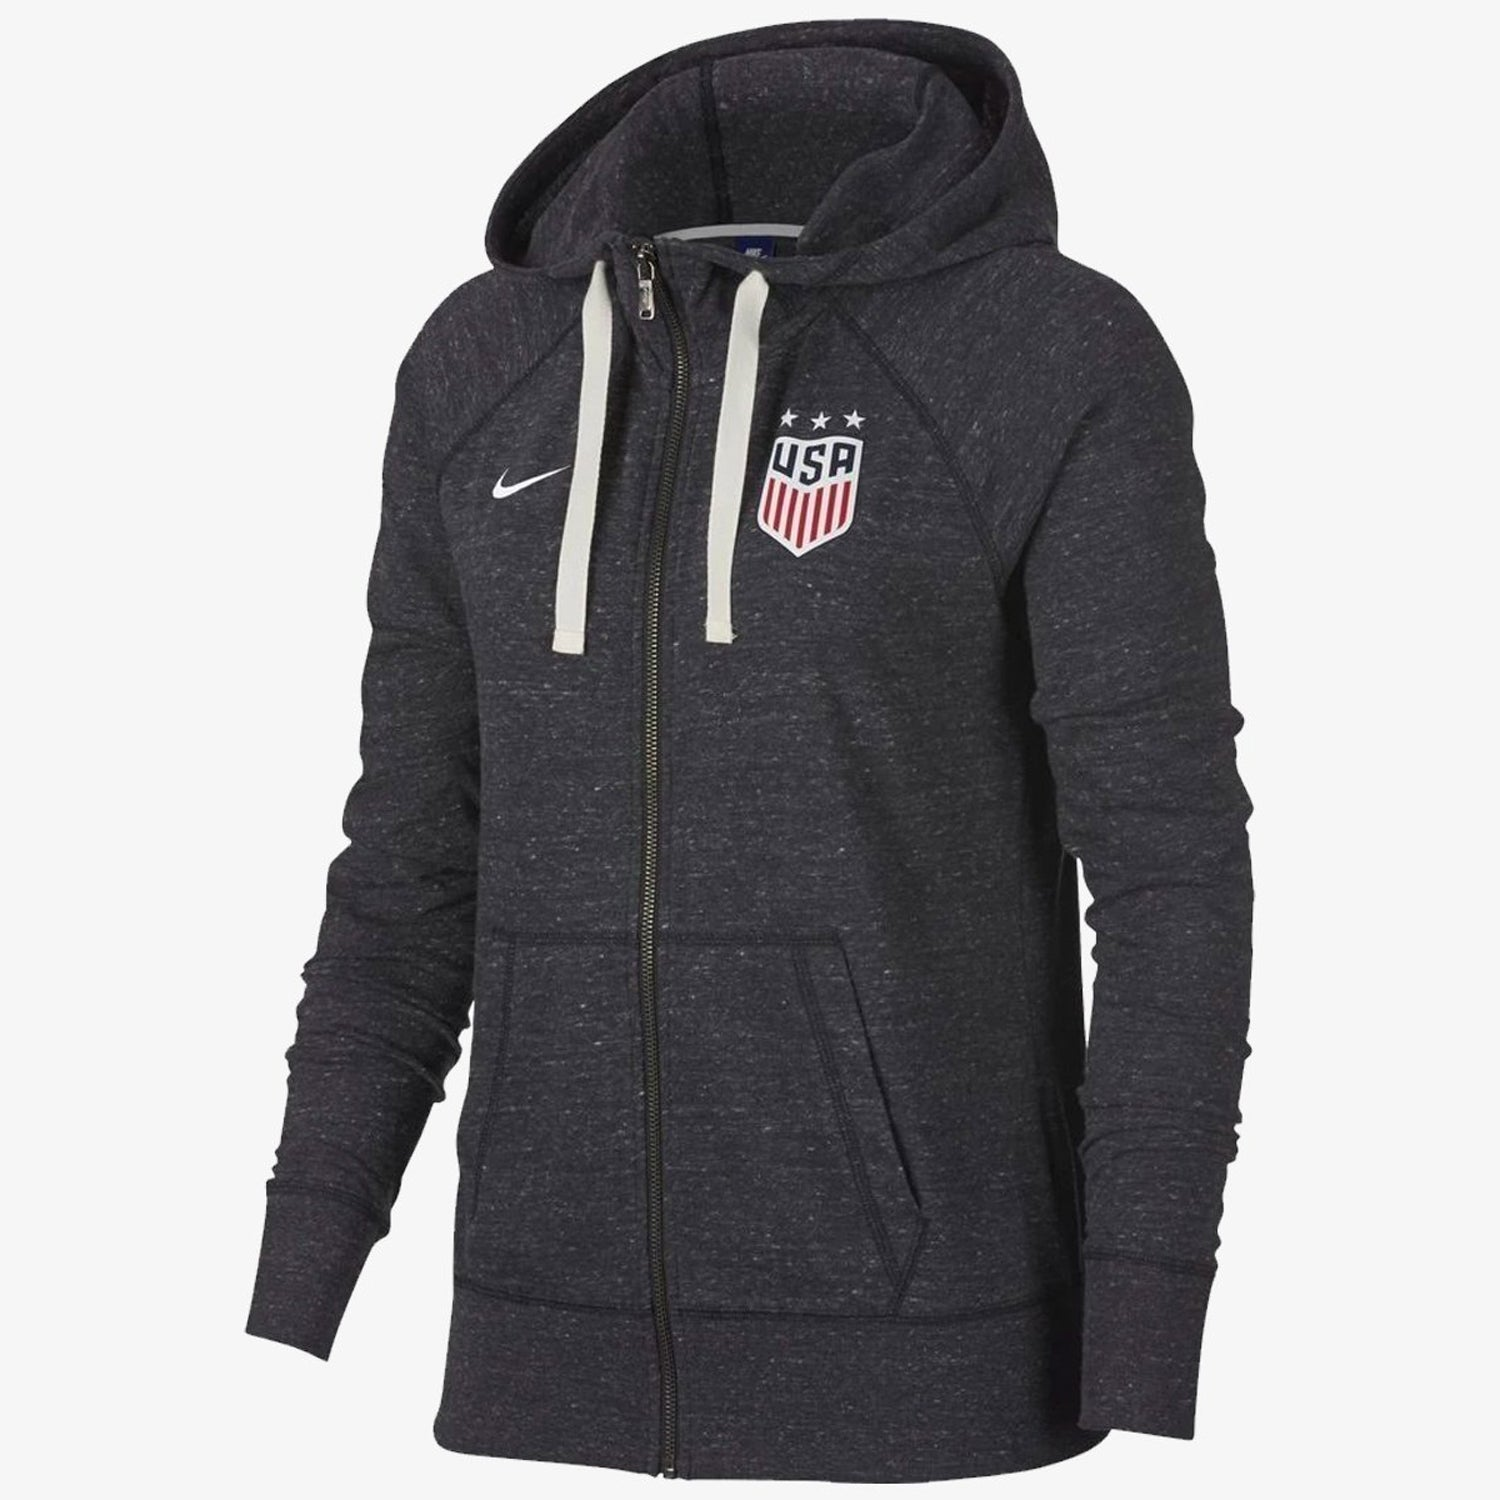 Women's USA Gym Vintage Hoodie - Grey/White